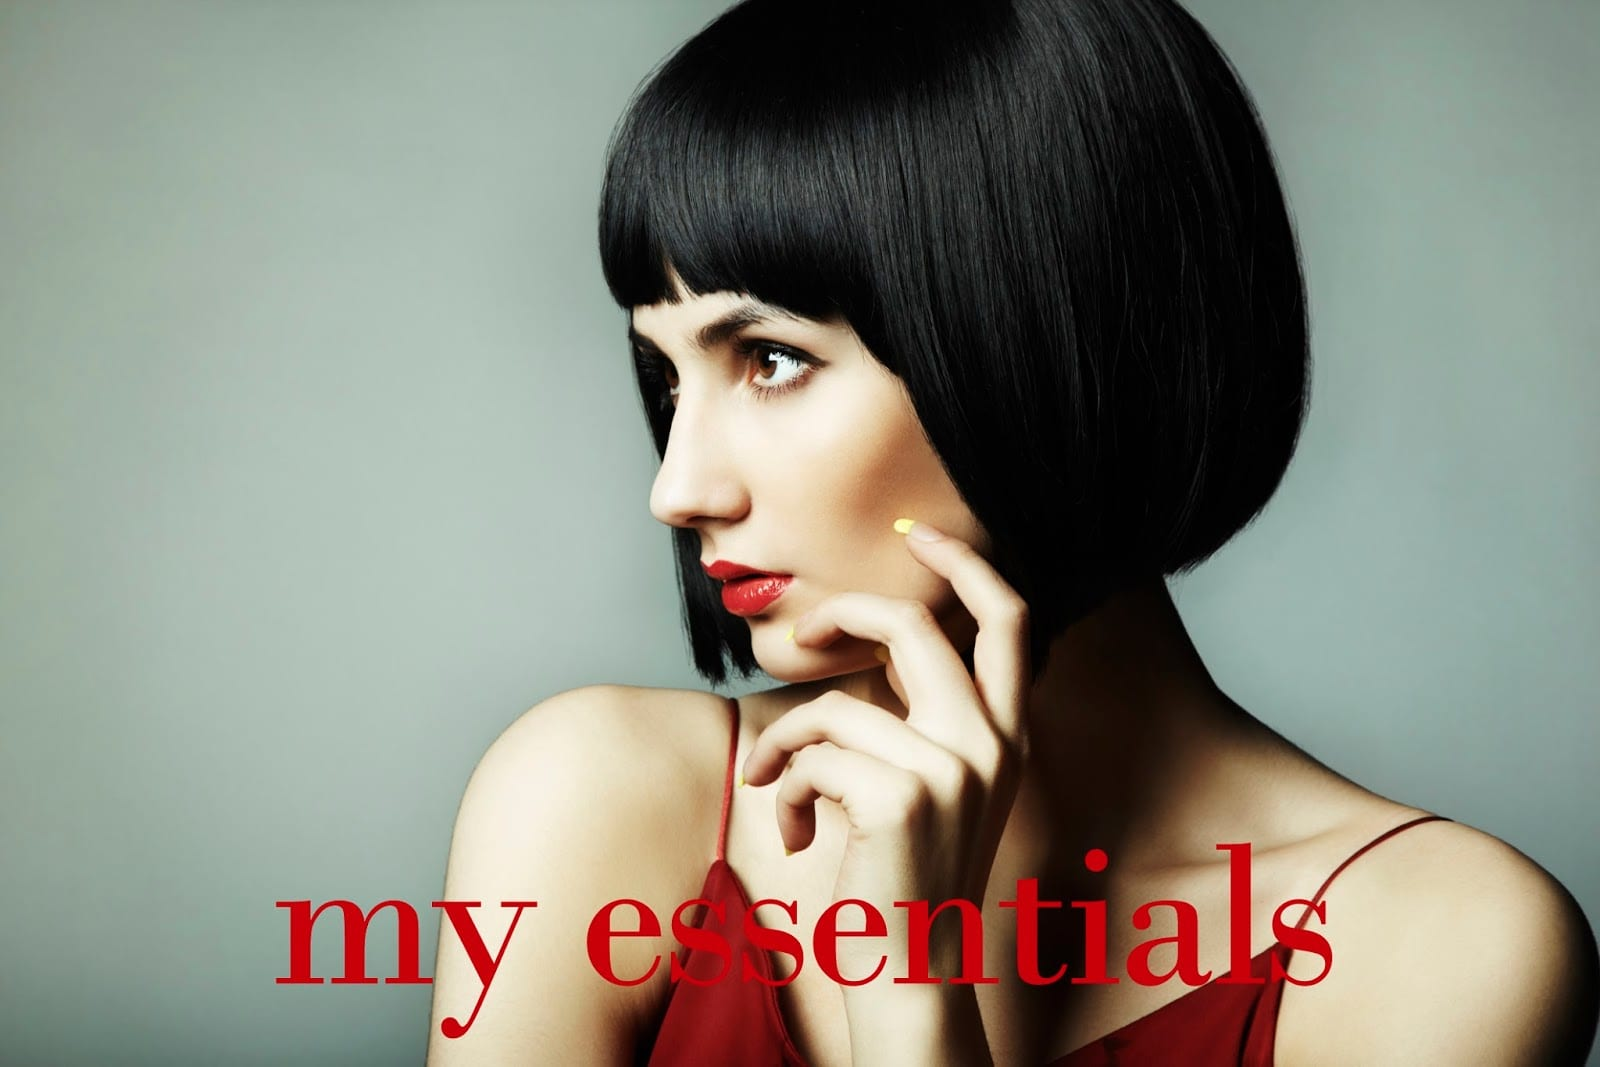 Hair Style Essentials : Hair essentials IN FRONT ROW STYLE